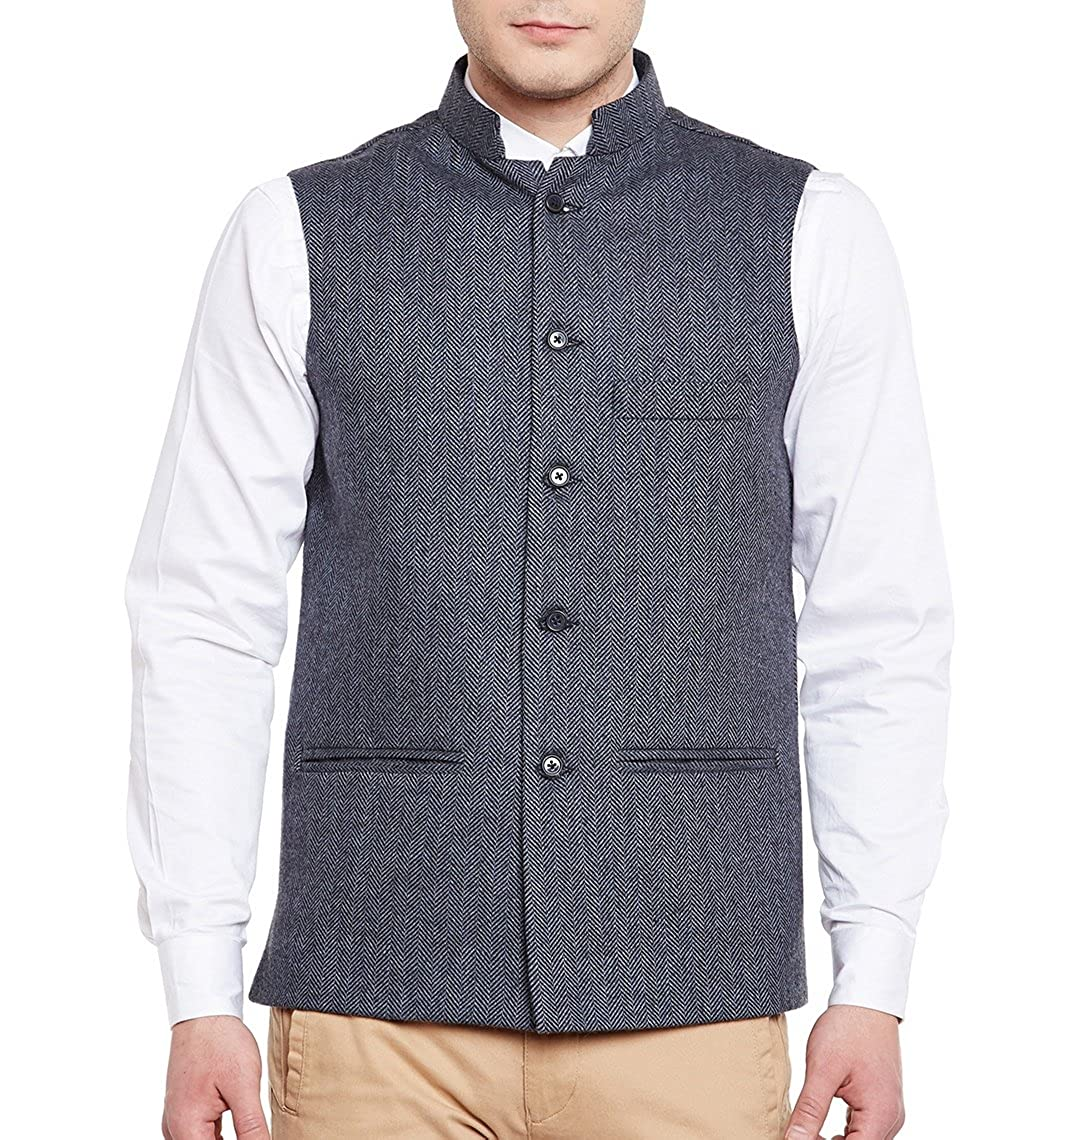 WINTAGE Men's Tweed Bandhgala Festive Nehru Jacket Waistcoat -3 Colors